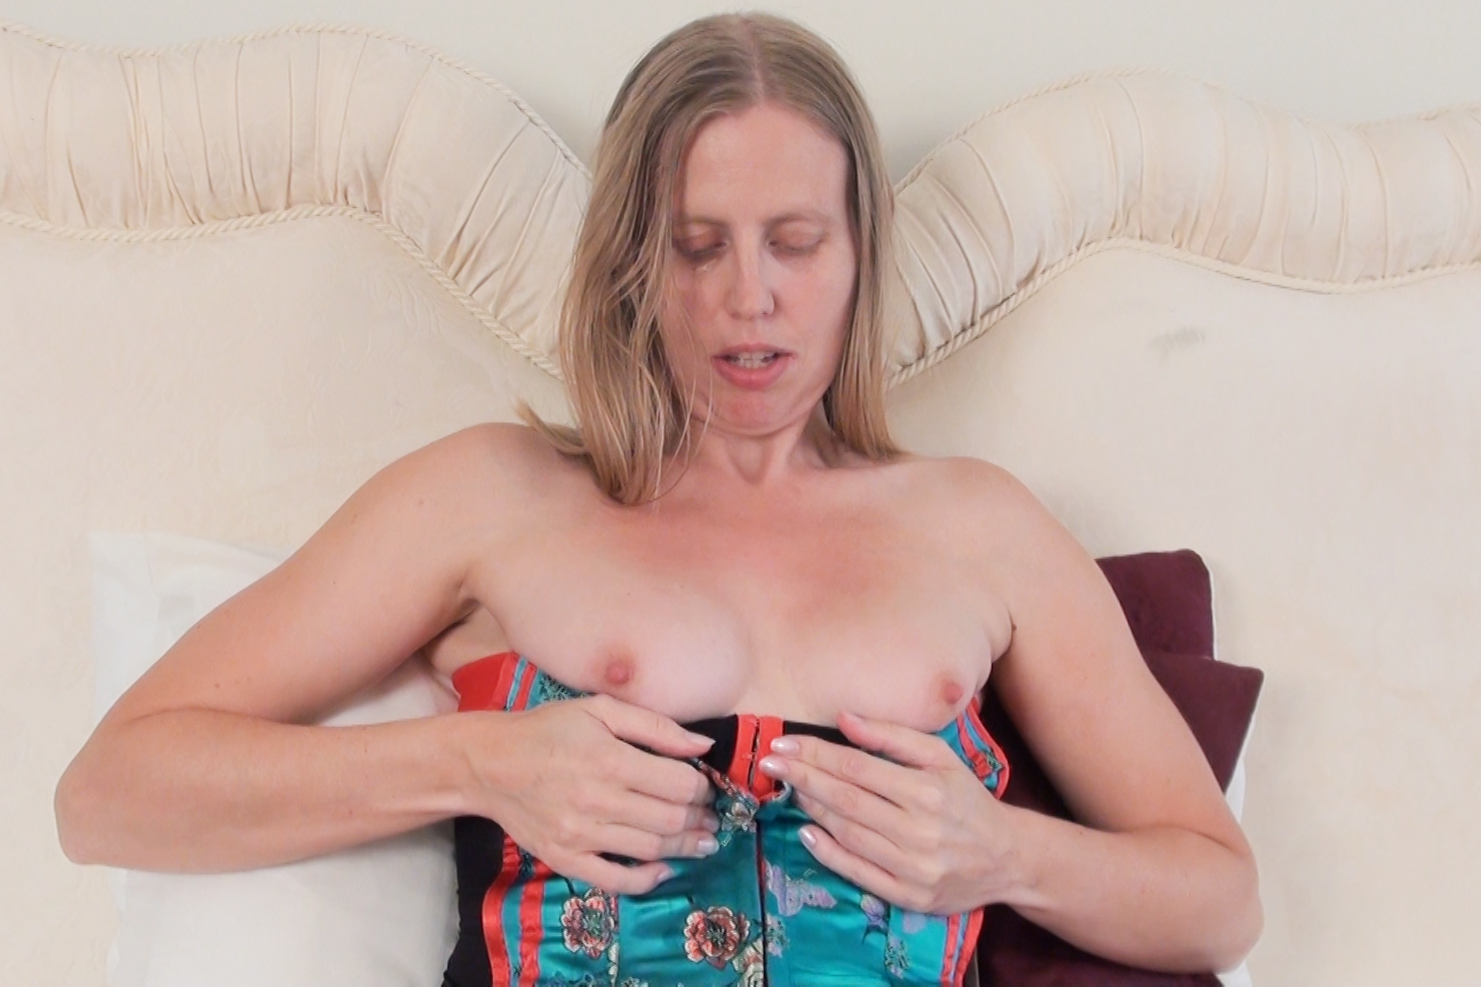 Sammie - Models - Dirty Doctor's Videos at Dirty Doctor's Videos